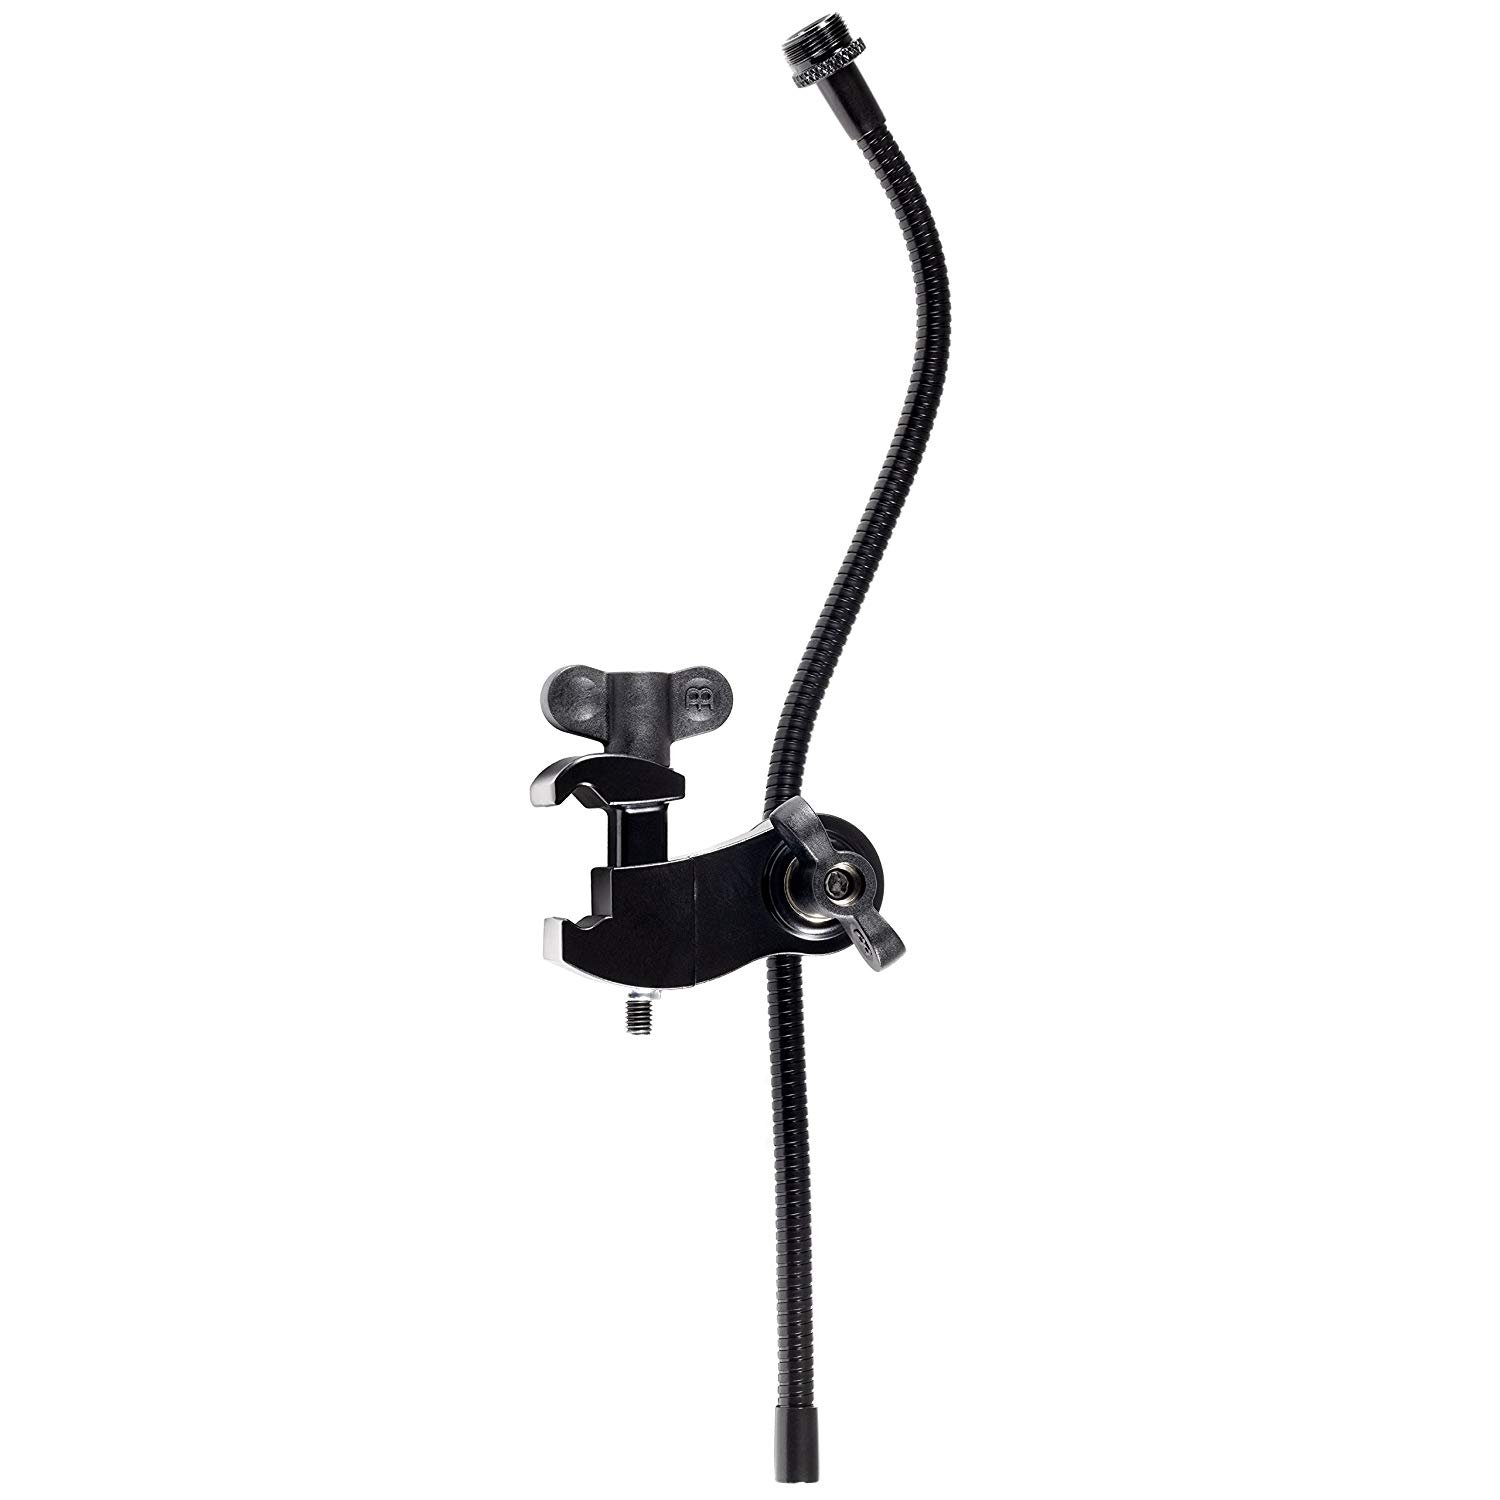 Meinl RIMCLAMP-M Gooseneck Microphone Attachment with Rim Clamp